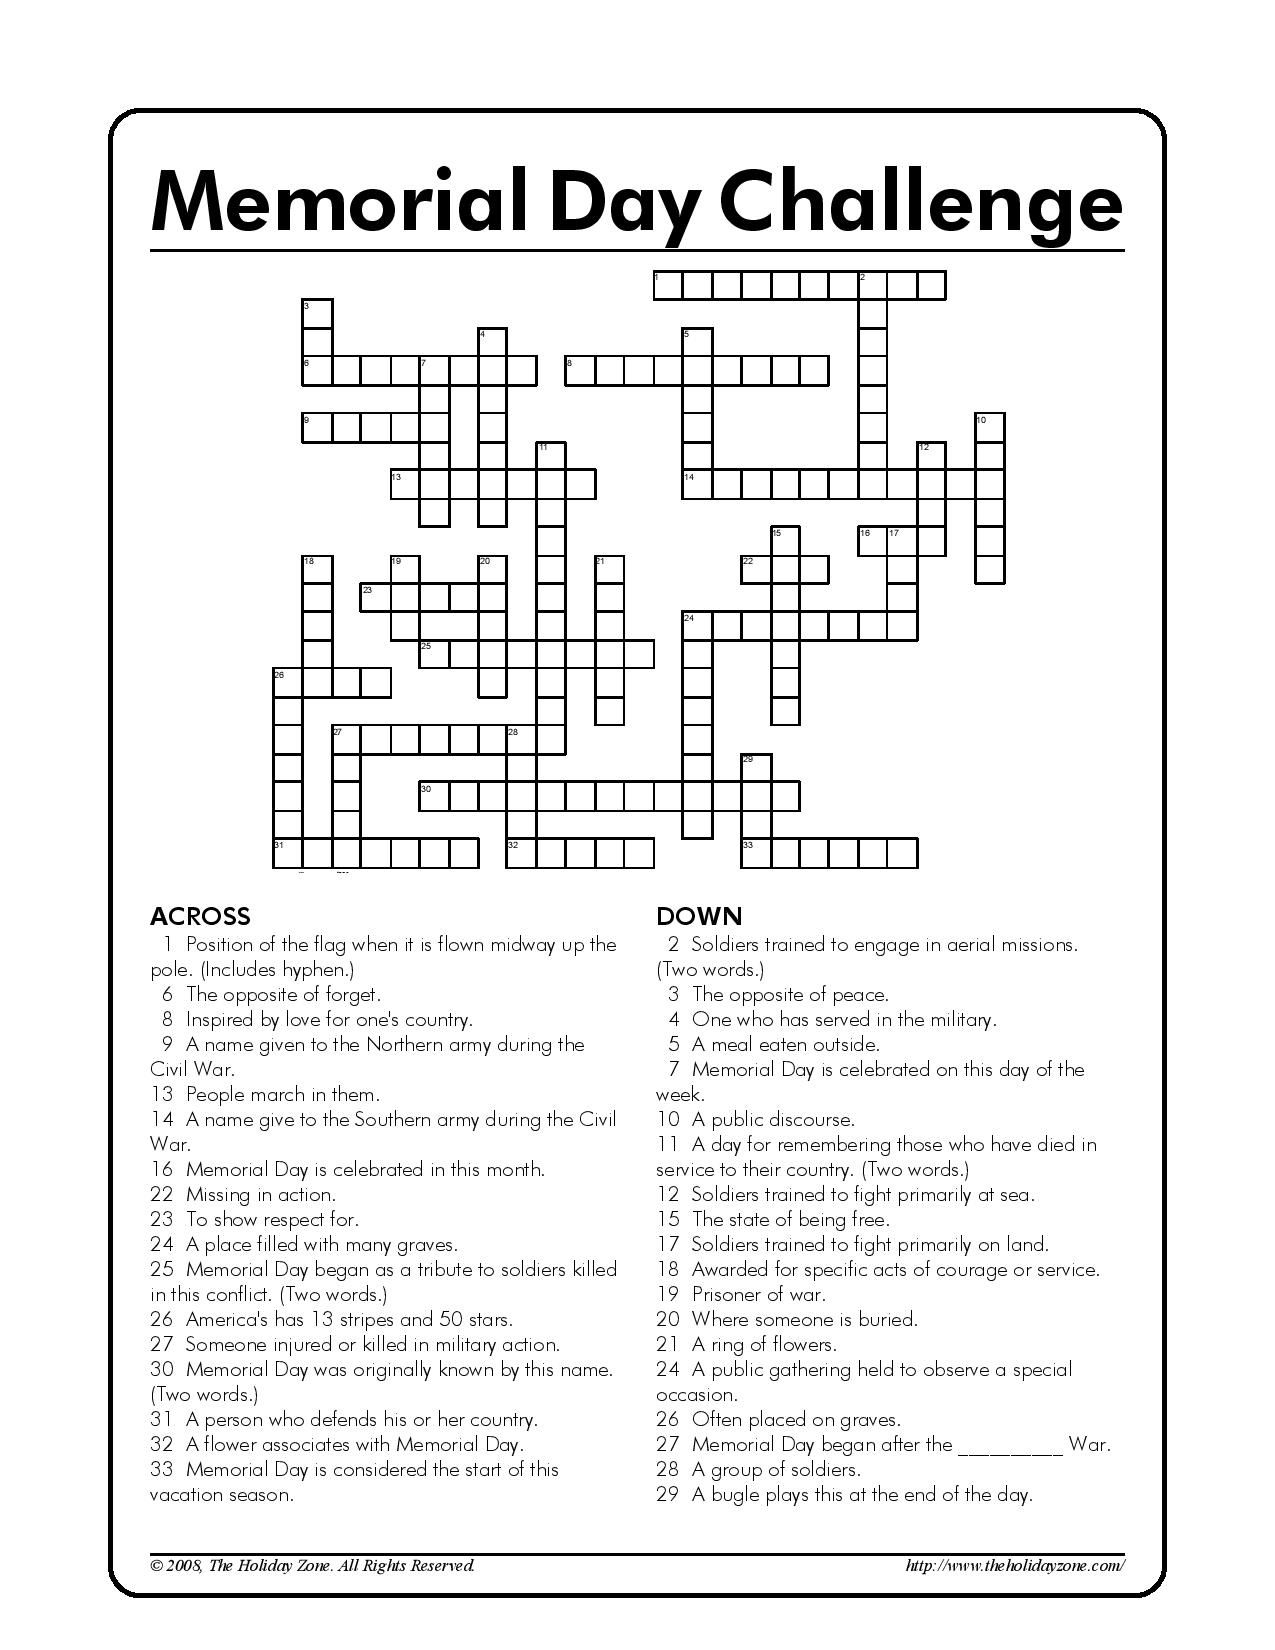 Memorial Day Kids Crossword Puzzle! [Courtesy Of The Holiday Zone - Memorial Day Crossword Puzzle Printable